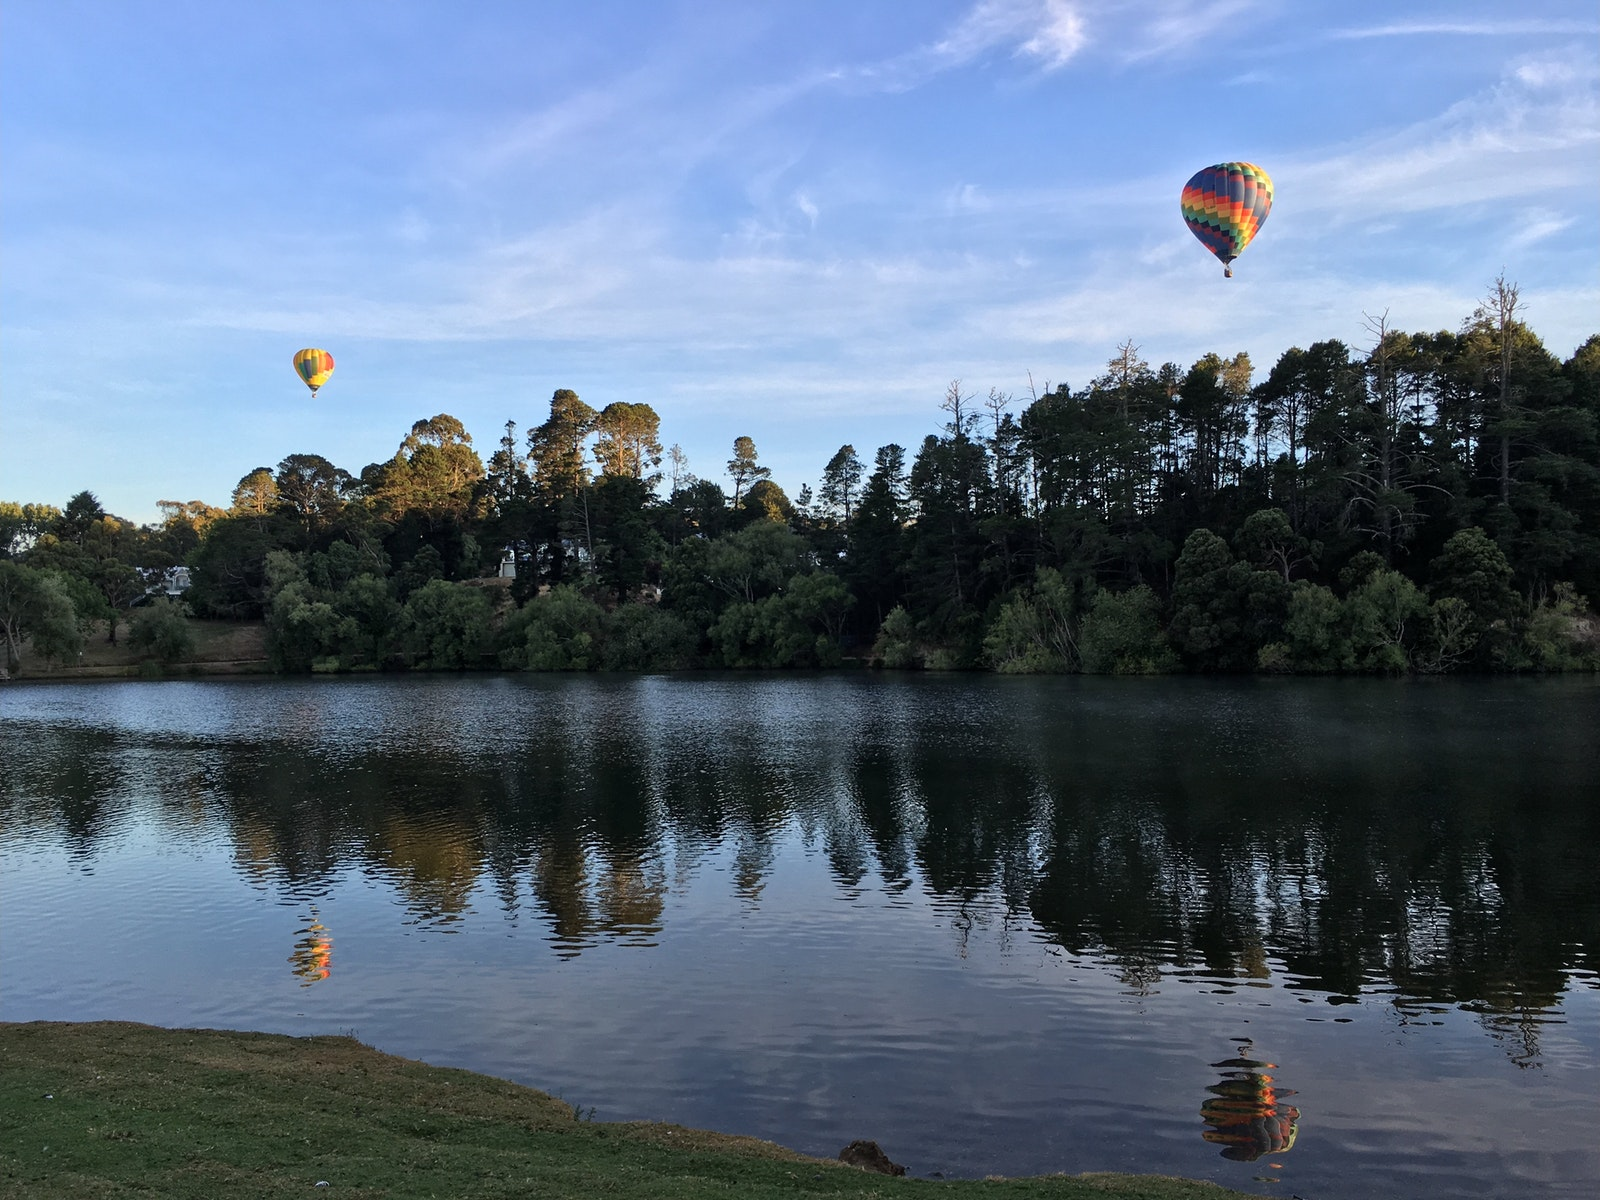 Lake Daylesford with hot air balloons